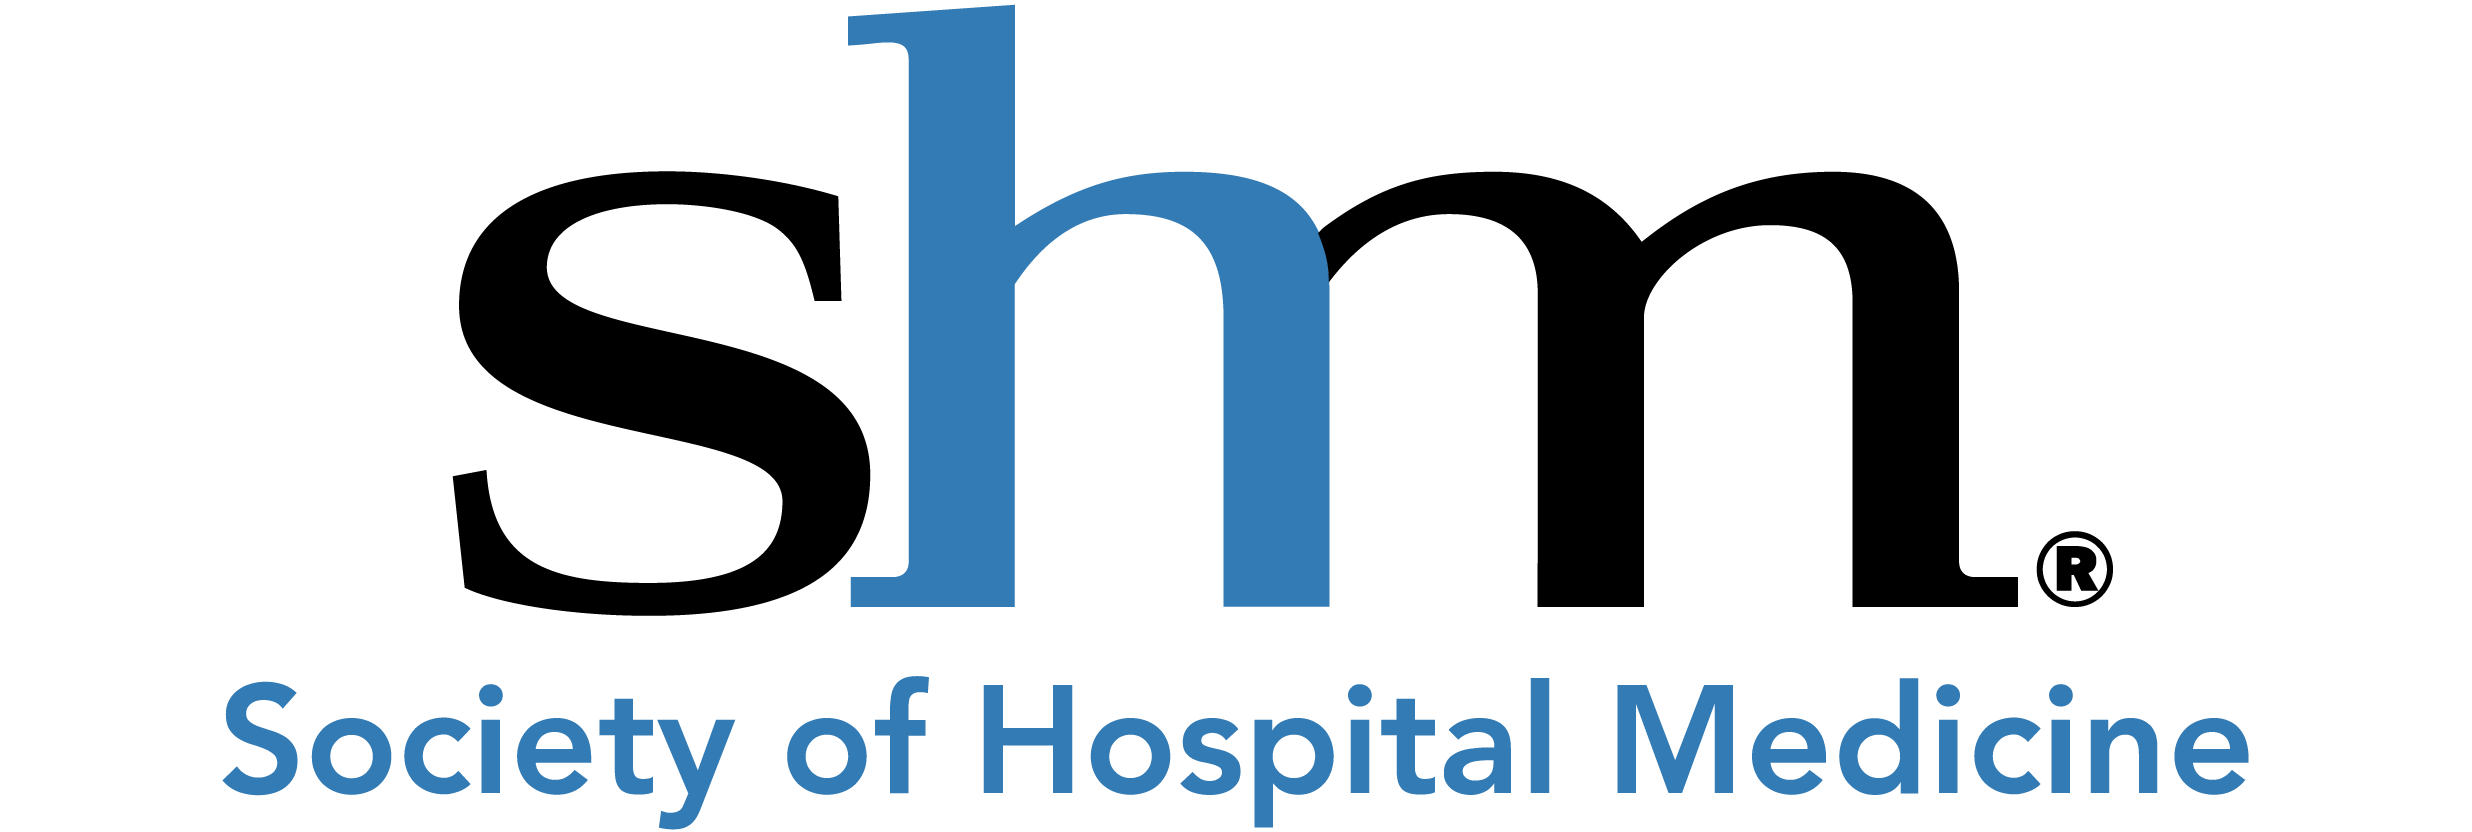 Society of Hospital Medicine Logo